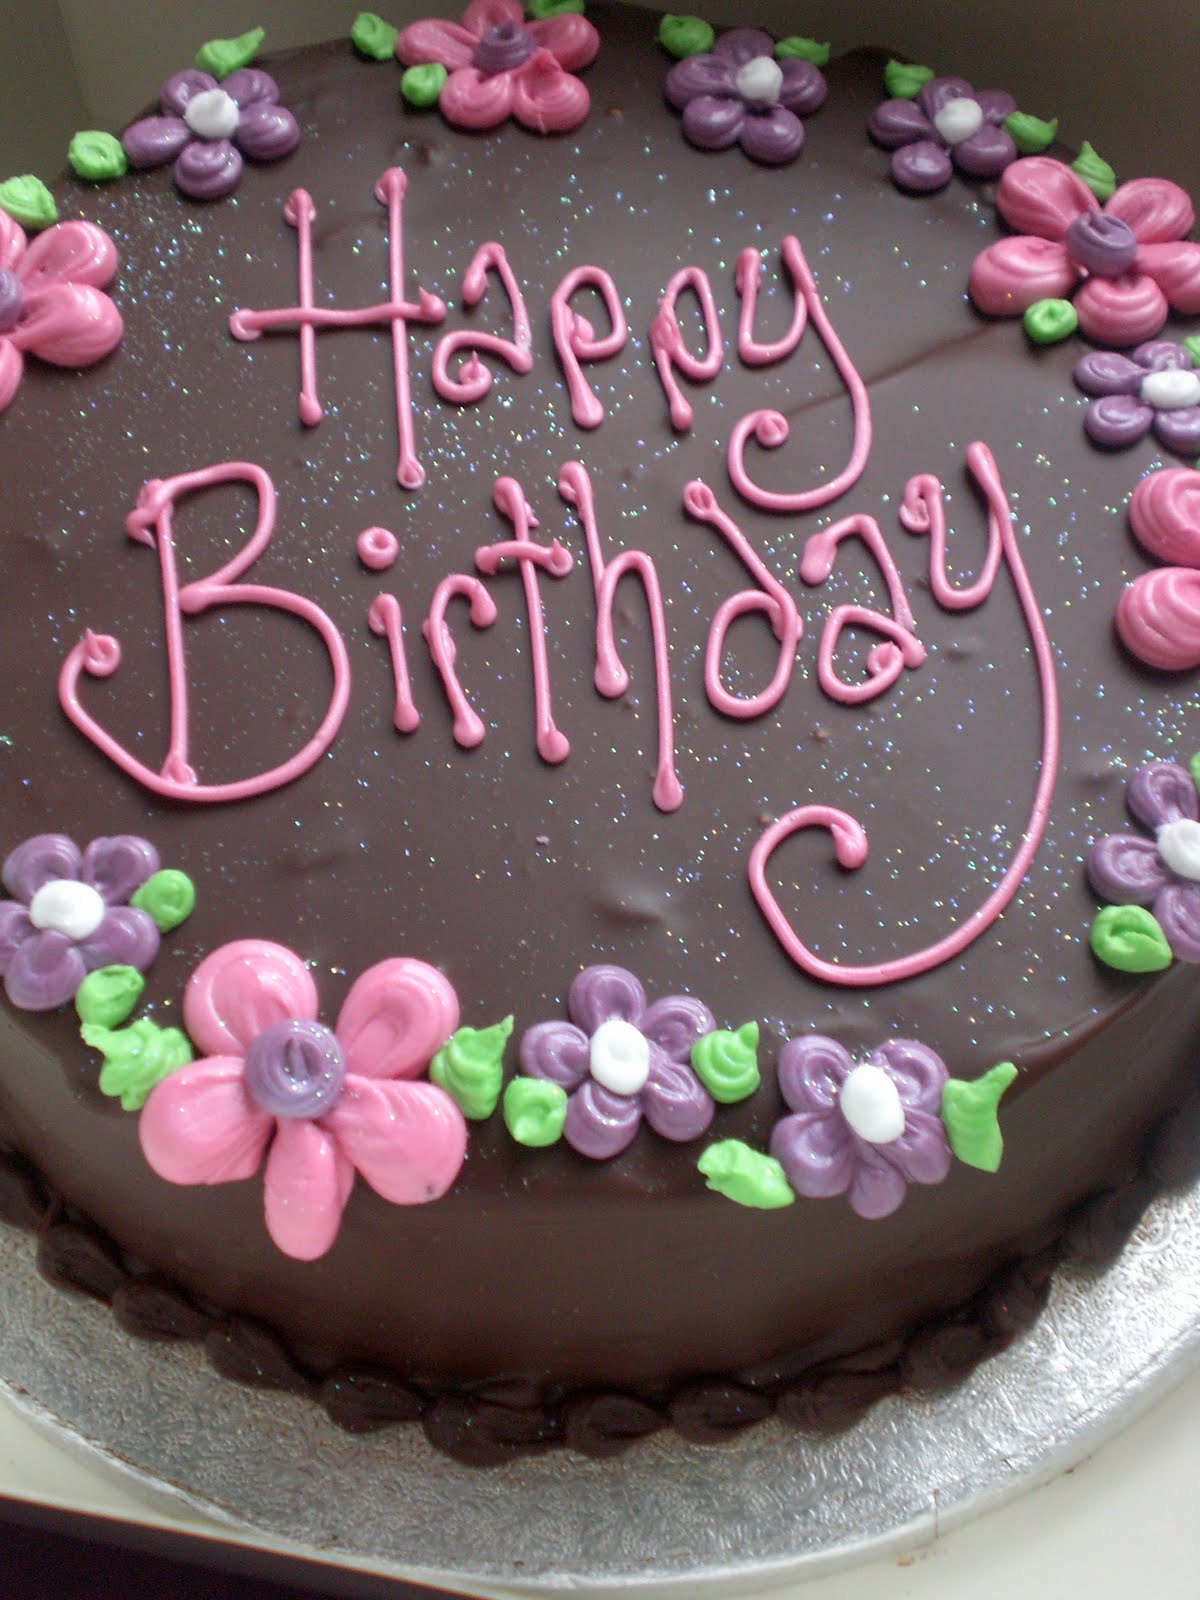 Happy Birthday Wishes Cake Pictues Imags Quotes To You Jesus Sister Cards Funny